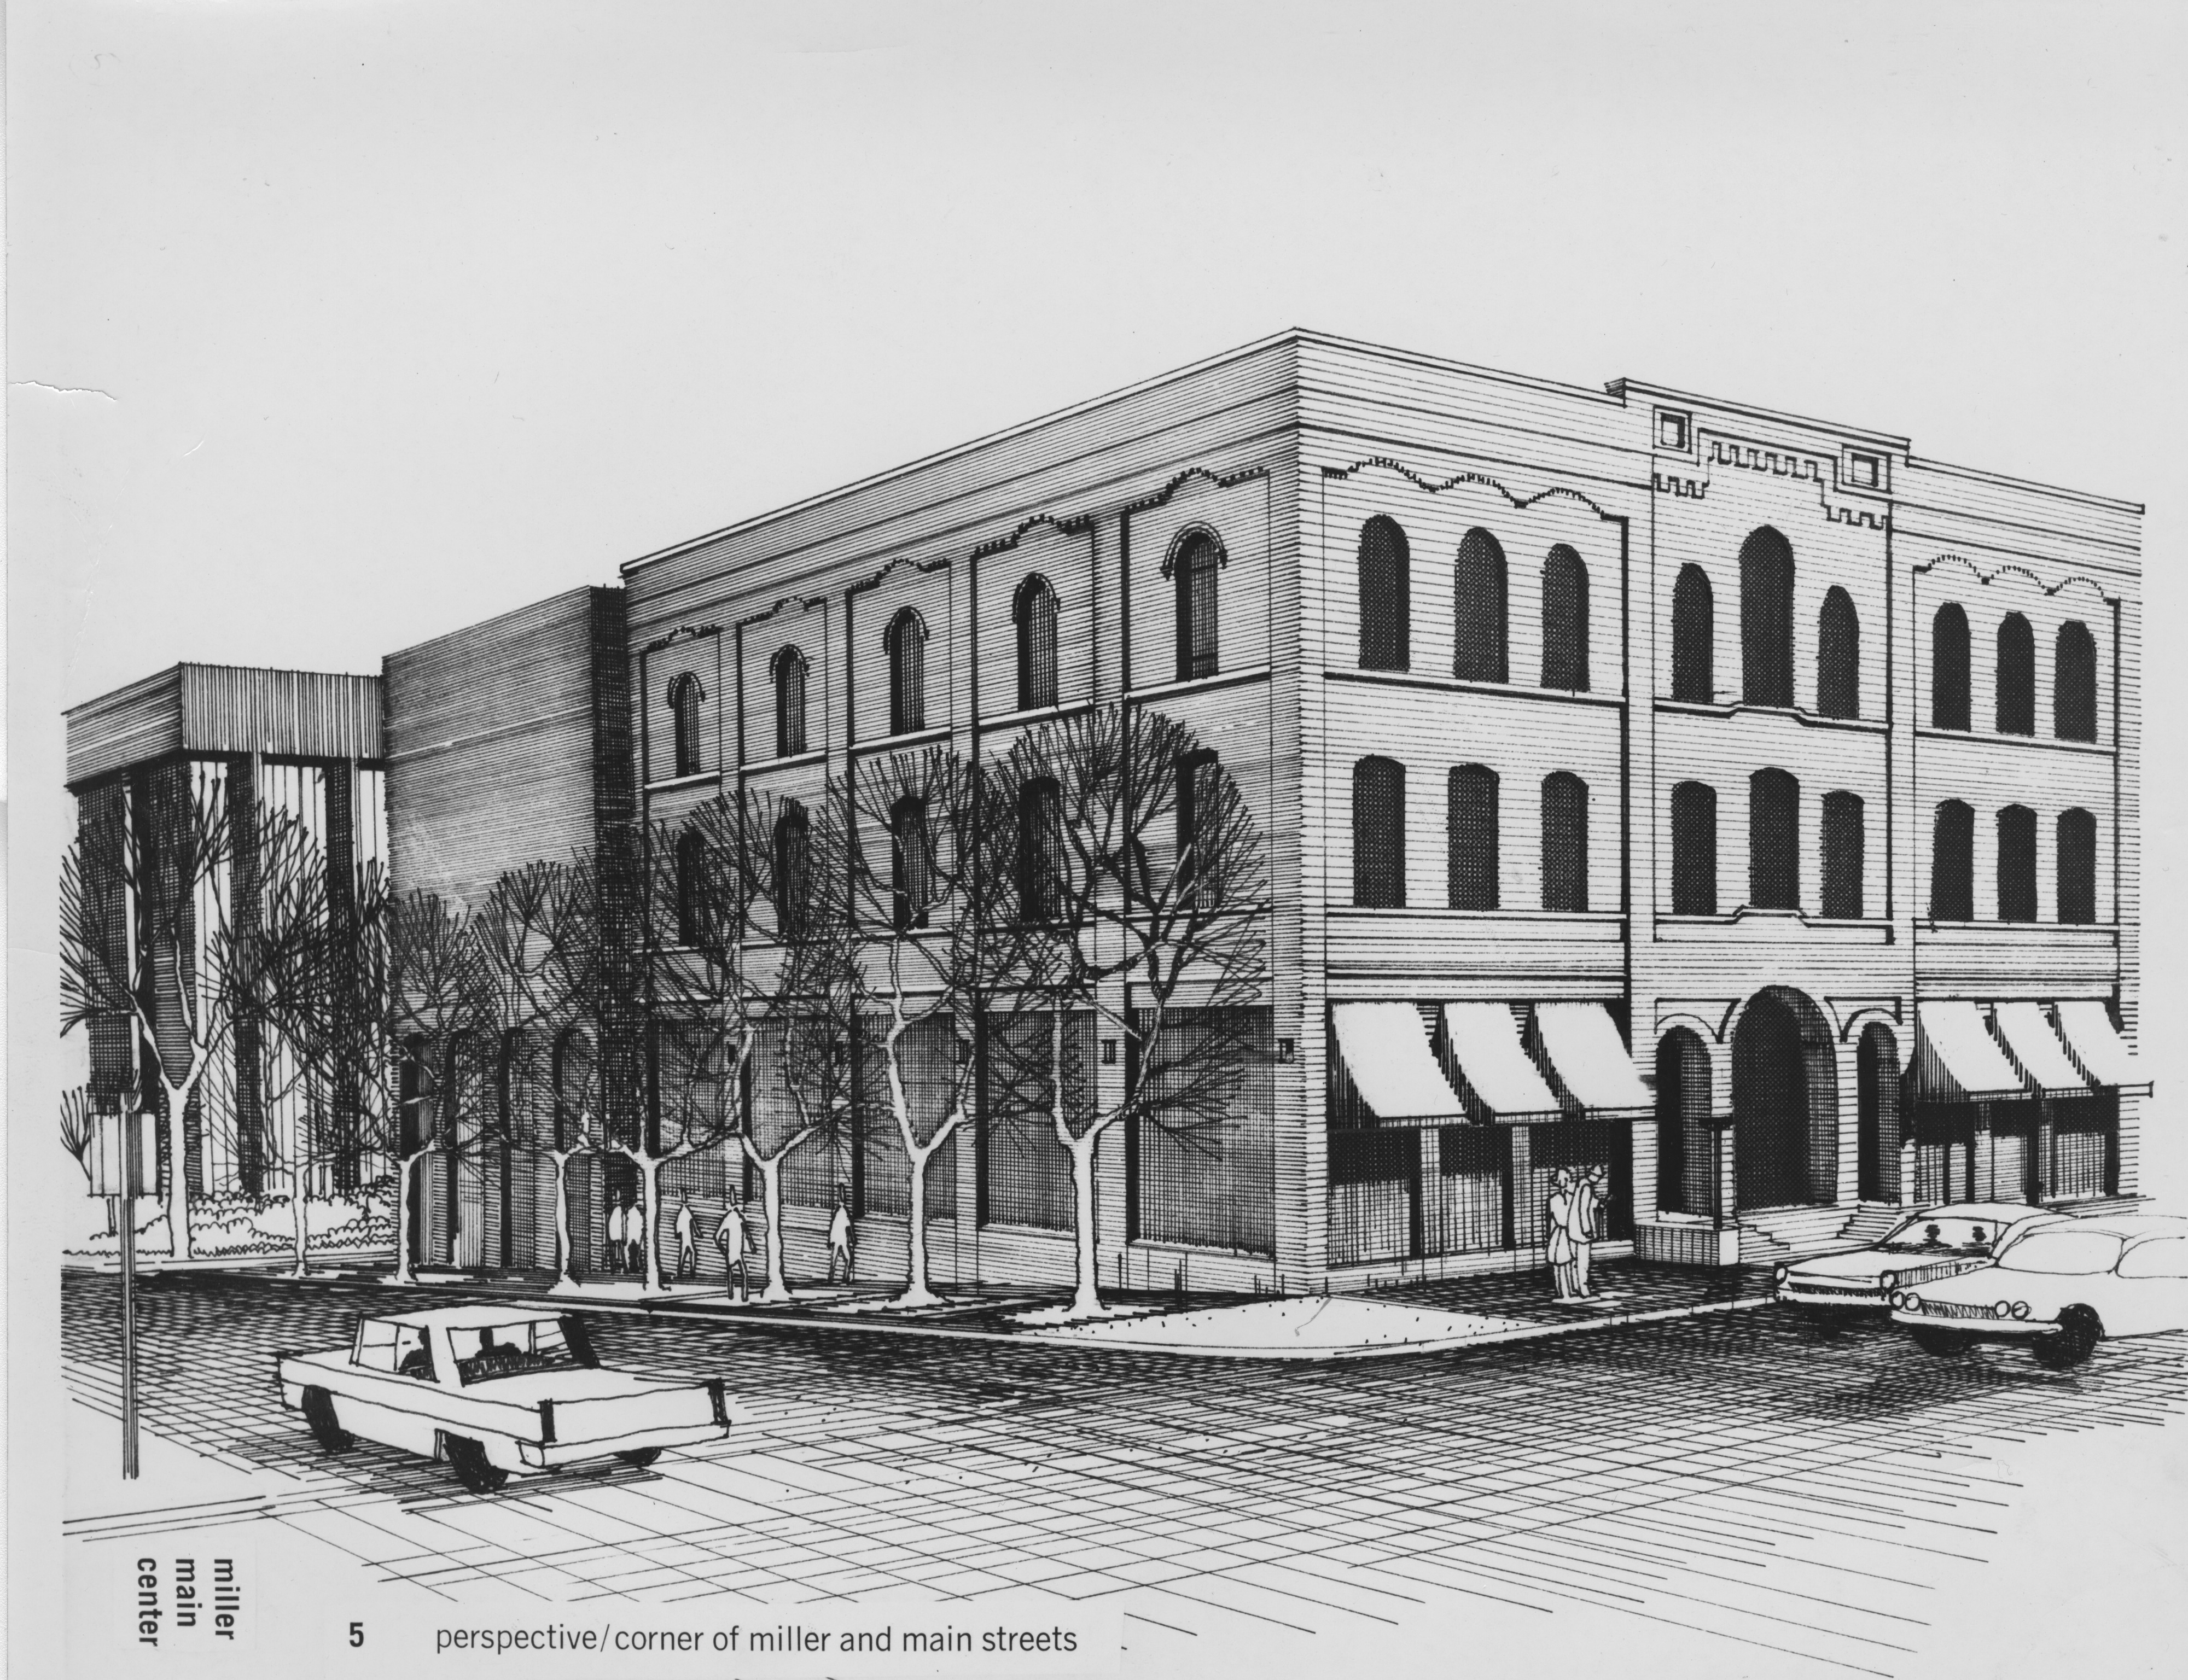 Rendering of Miller Main Center, 1969 image